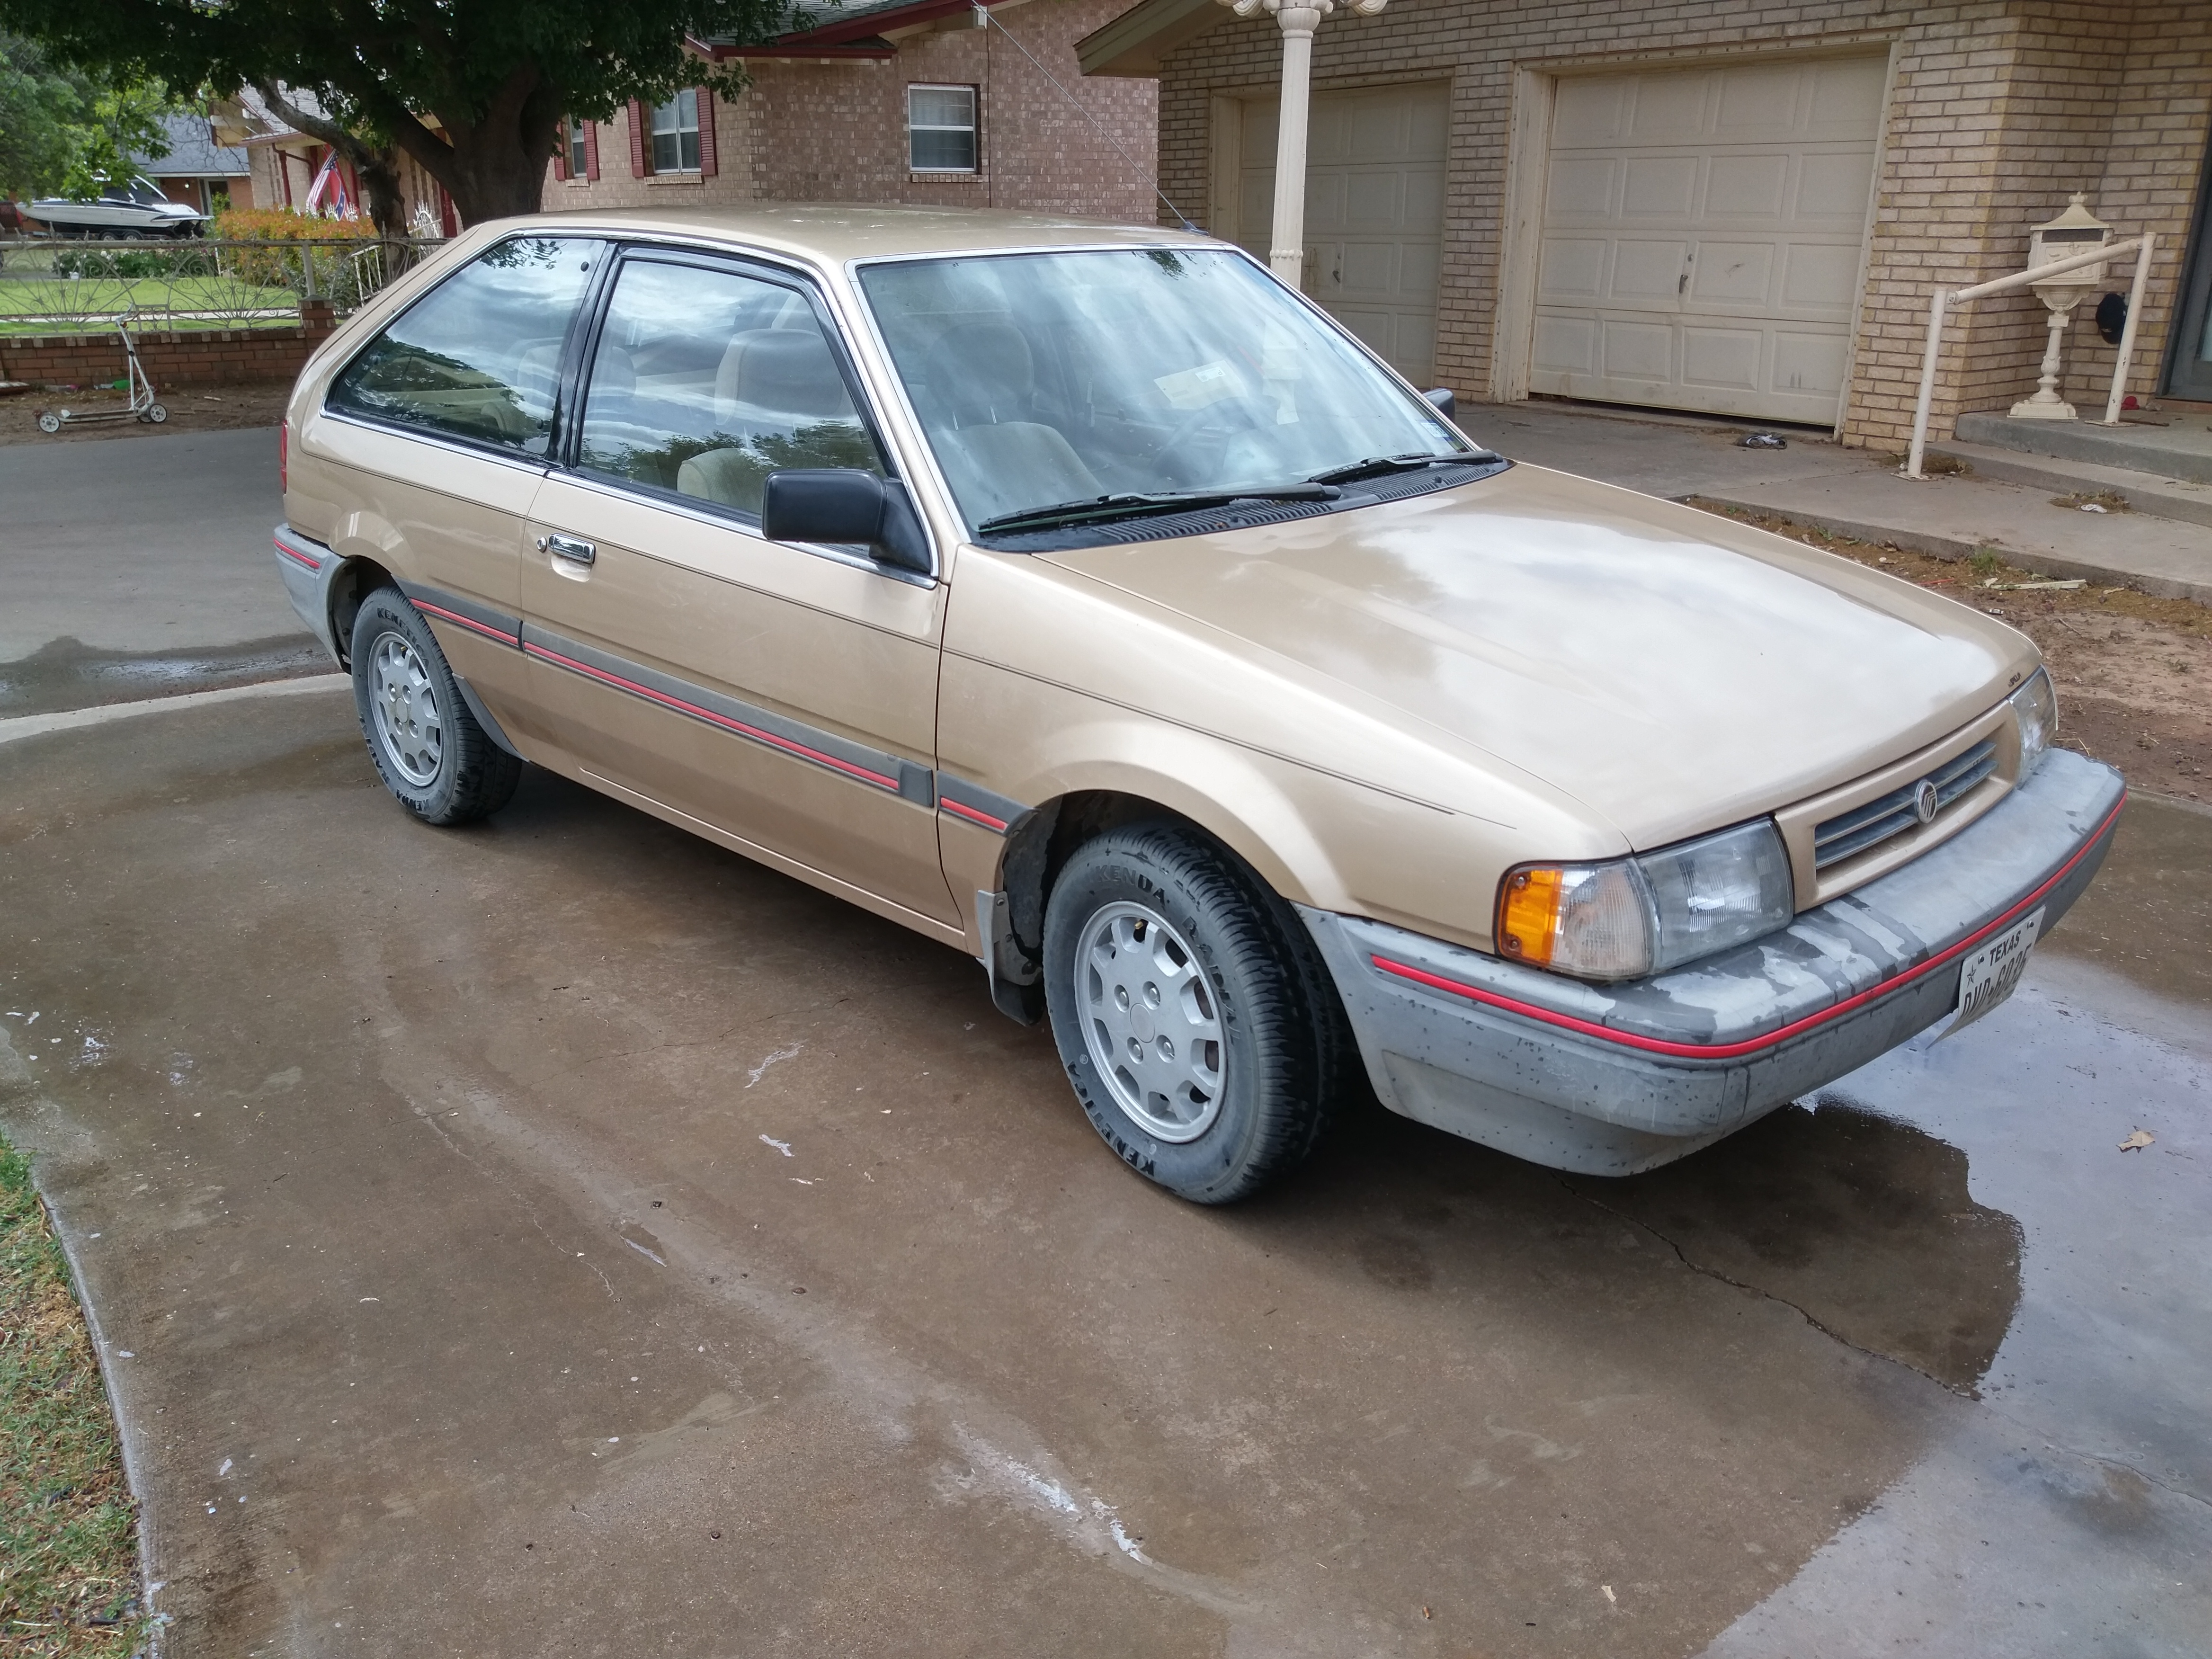 Cohort Classic: 1989 Mercury Tracer – The Almost Forgotten One